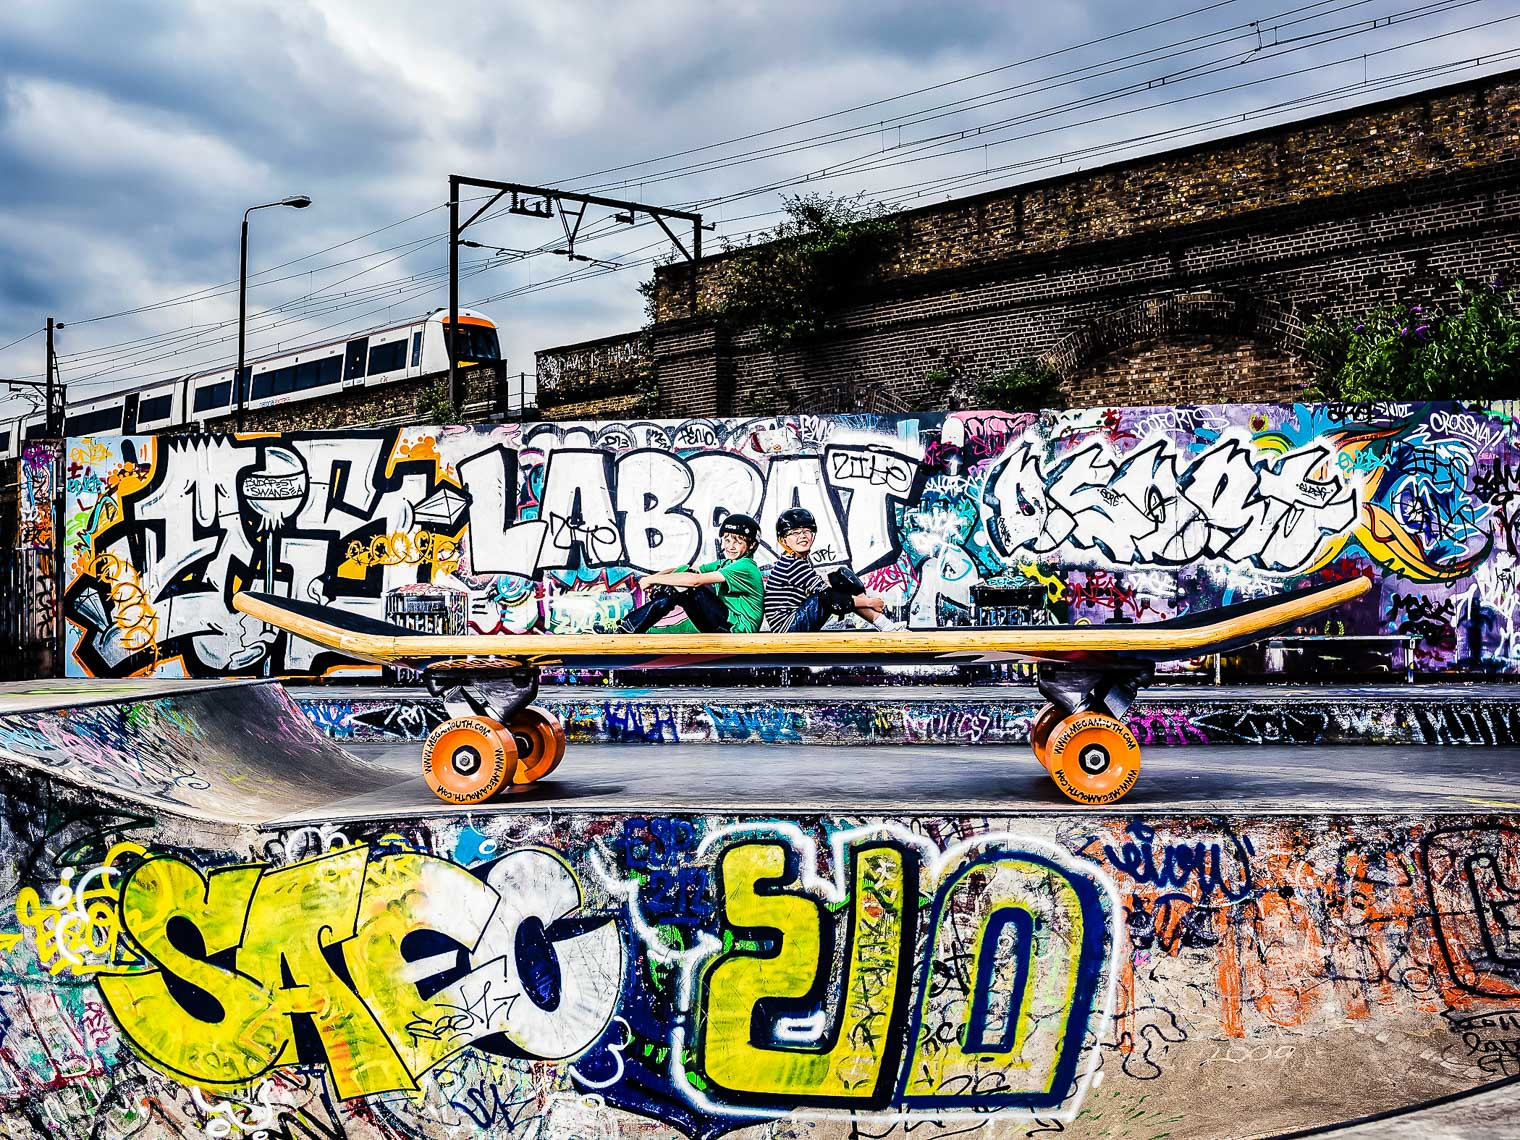 Bazooka_skateboard-4490560 copy